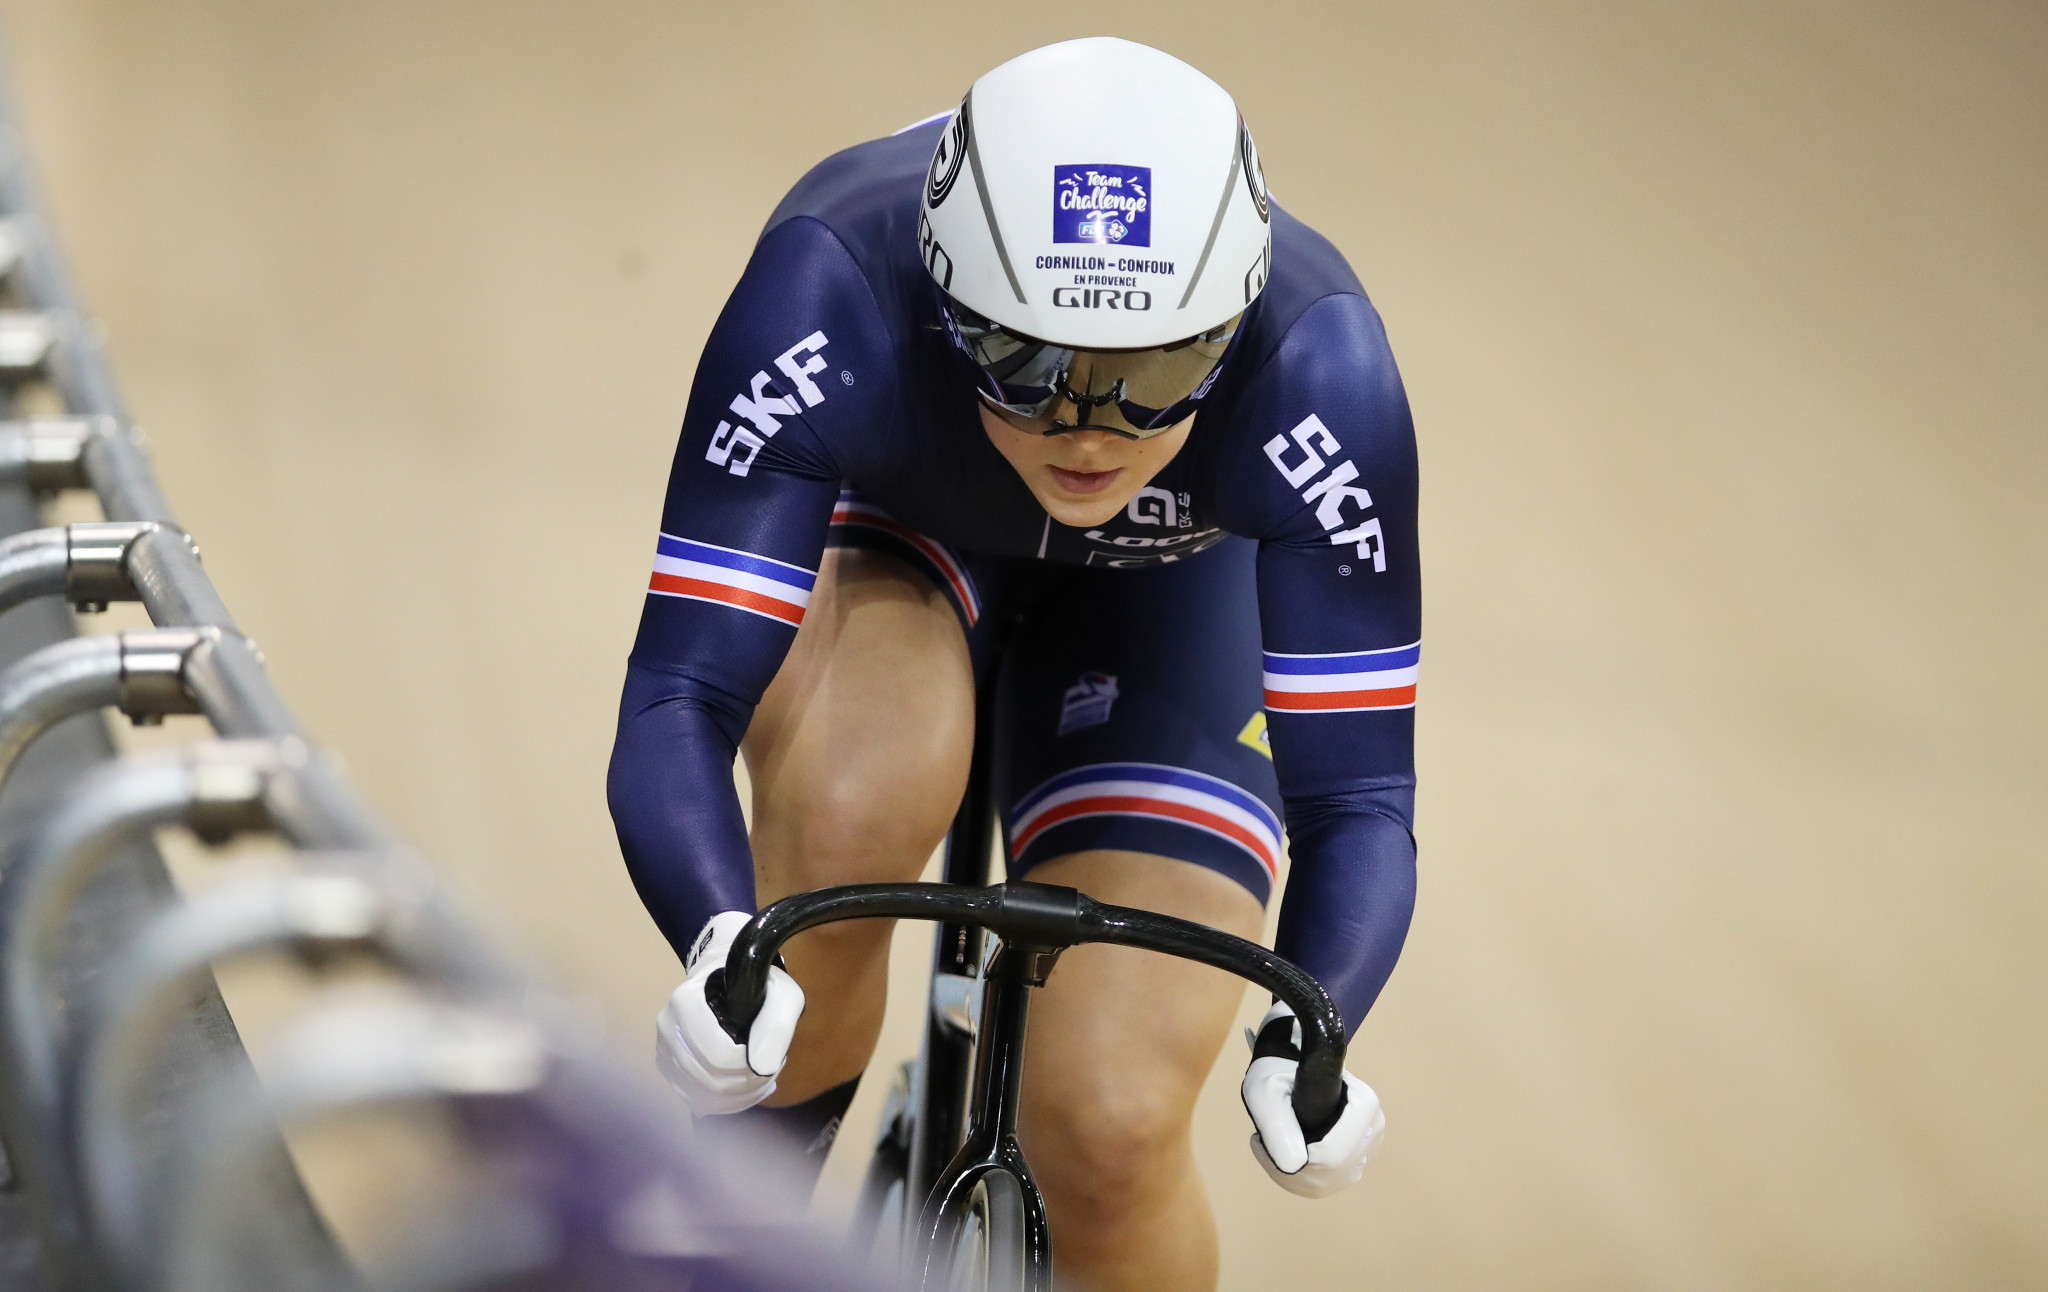 Milton to host final event of UCI Track World Cup season